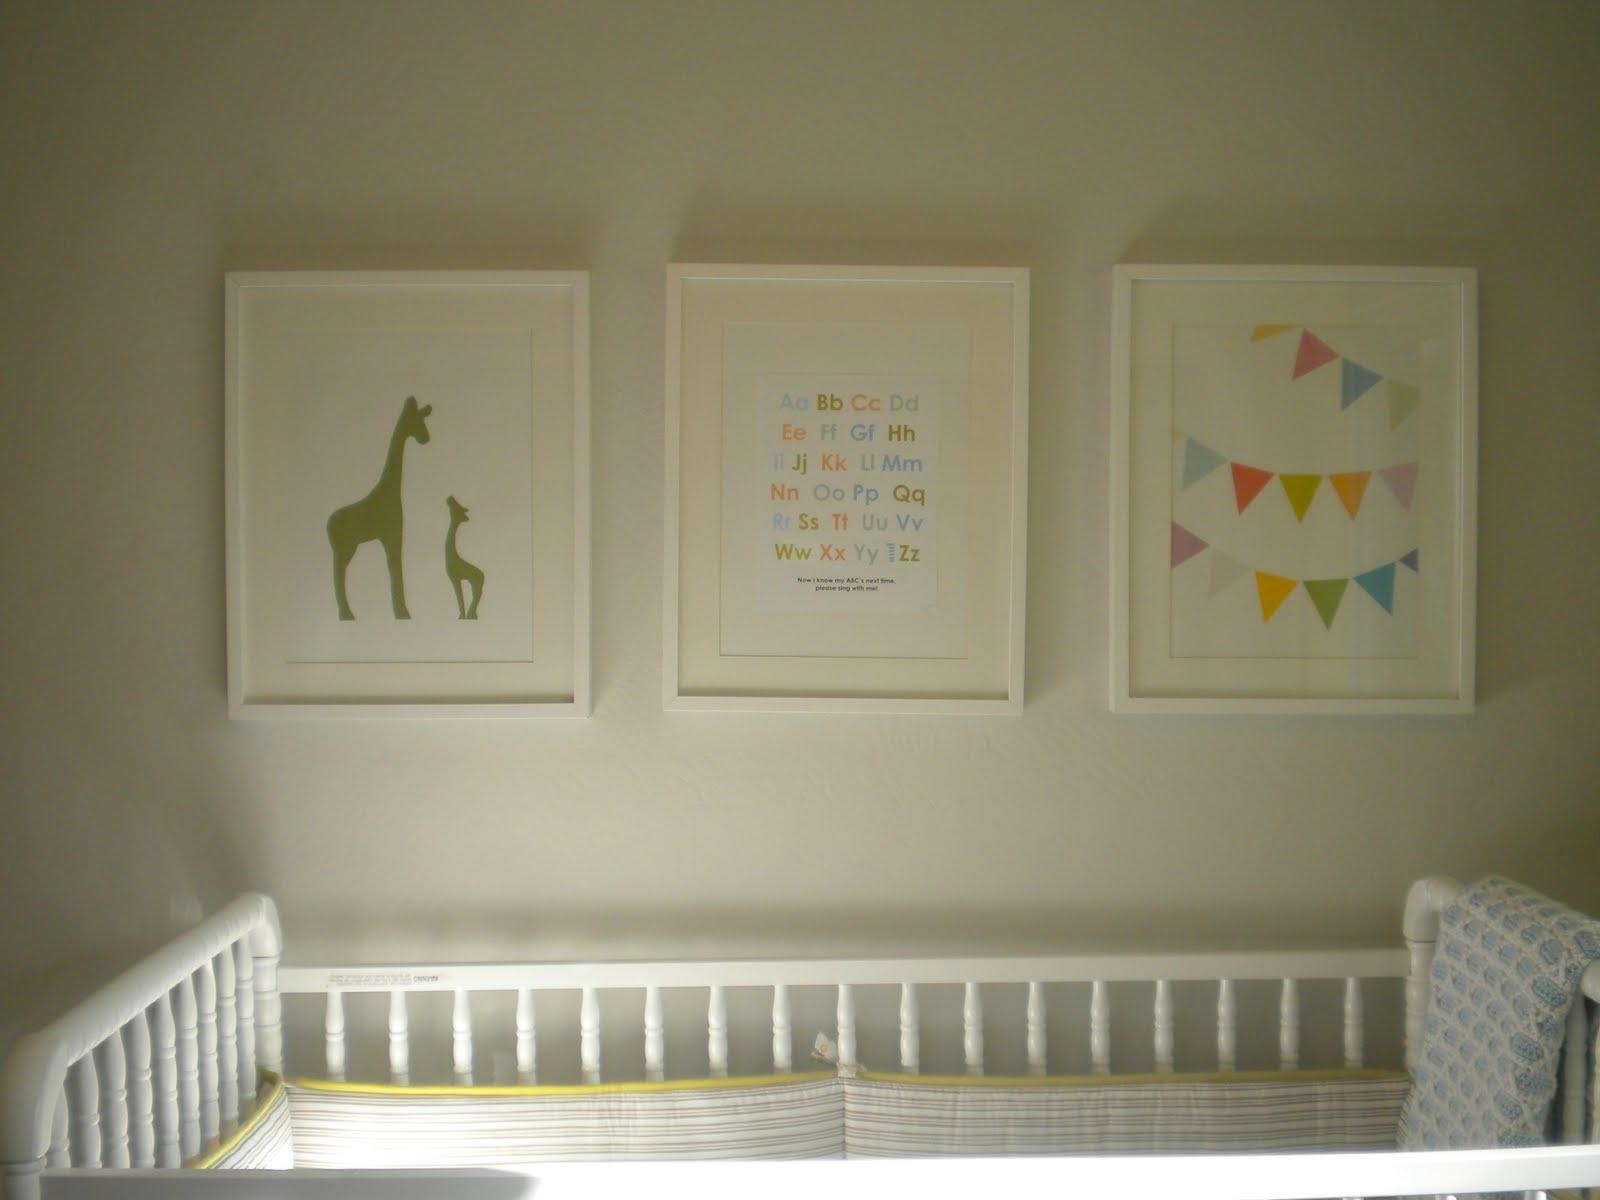 Framed Nursery Art ~ Thenurseries Intended For Nursery Framed Wall Art (View 4 of 20)